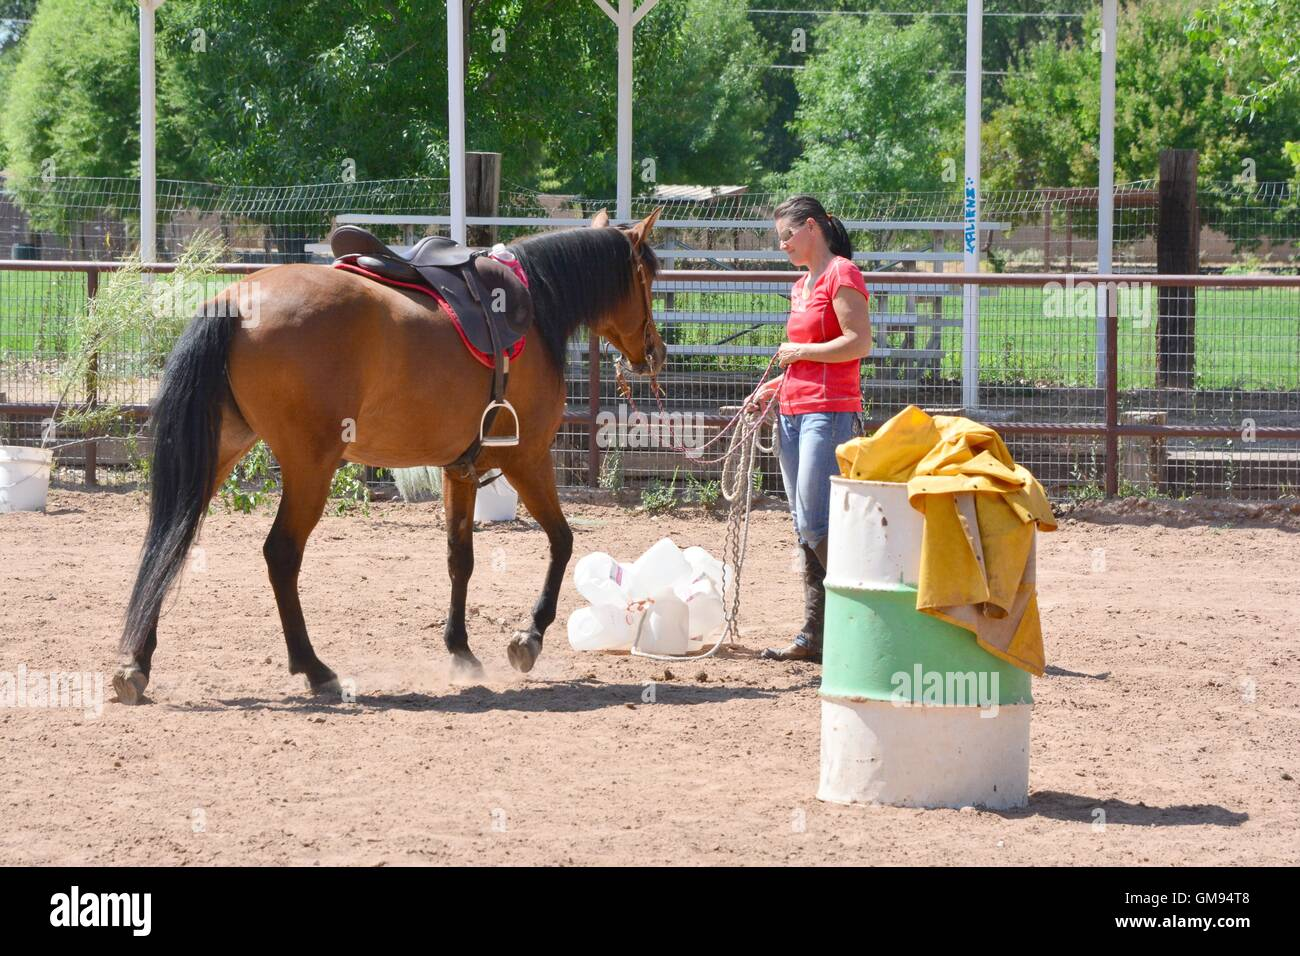 Horse being introduced to trail trash in the form of several milk jugs. - Stock Image